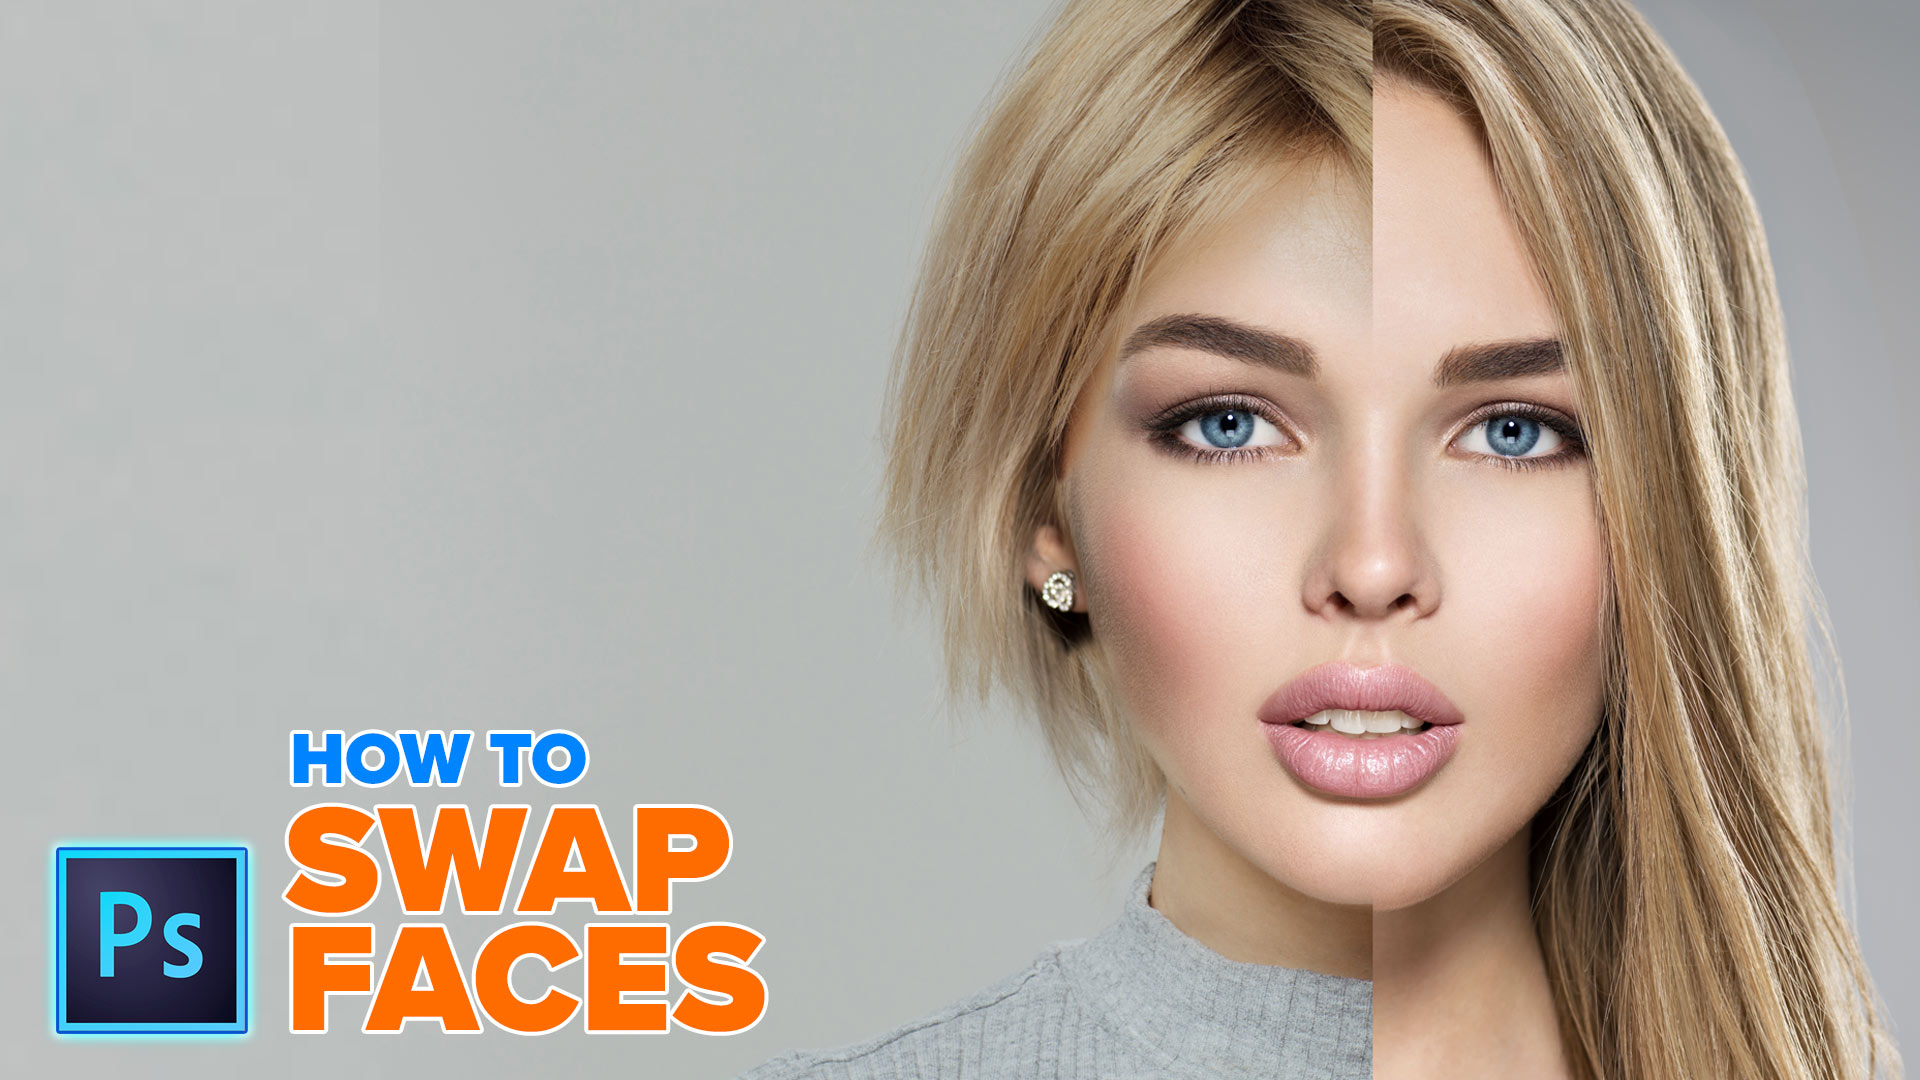 How to Swap faces in Photoshop tutorial - PhotoshopCAFE